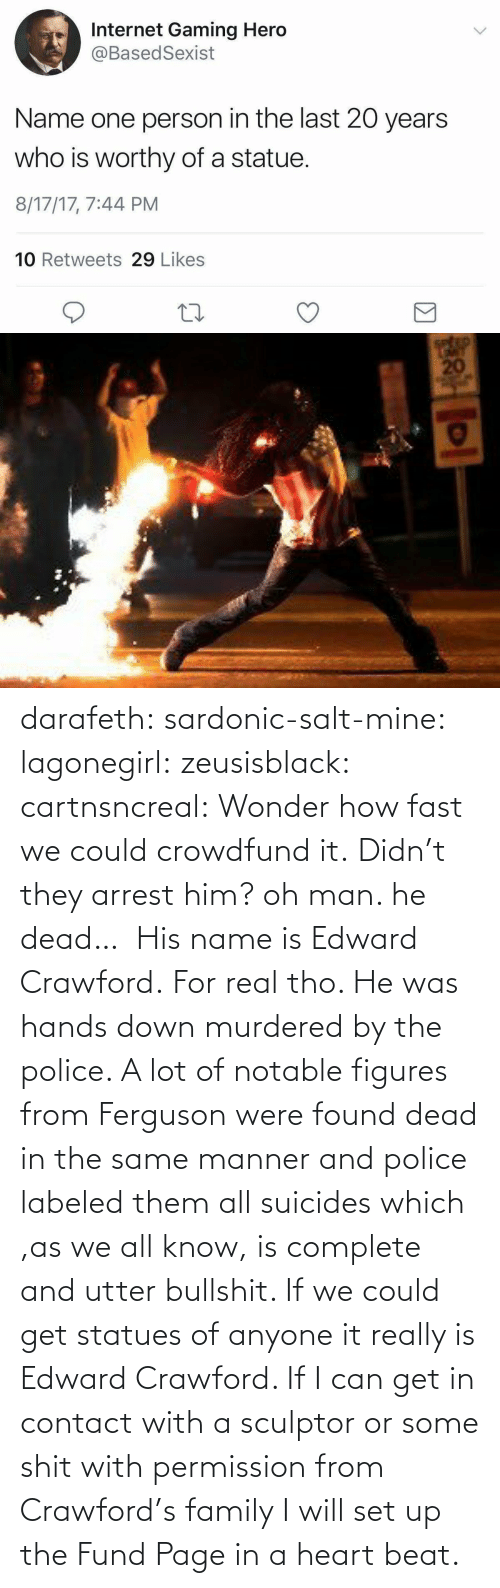 Could: darafeth: sardonic-salt-mine:  lagonegirl:  zeusisblack:  cartnsncreal:   Wonder how fast we could crowdfund it.    Didn't they arrest him?  oh man. he dead…   His name is Edward Crawford.   For real tho. He was hands down murdered by the police. A lot of notable figures from Ferguson were found dead in the same manner and police labeled them all suicides which ,as we all know, is complete and utter bullshit.  If we could get statues of anyone it really is Edward Crawford. If I can get in contact with a sculptor or some shit with permission from Crawford's family I will set up the Fund Page in a heart beat.